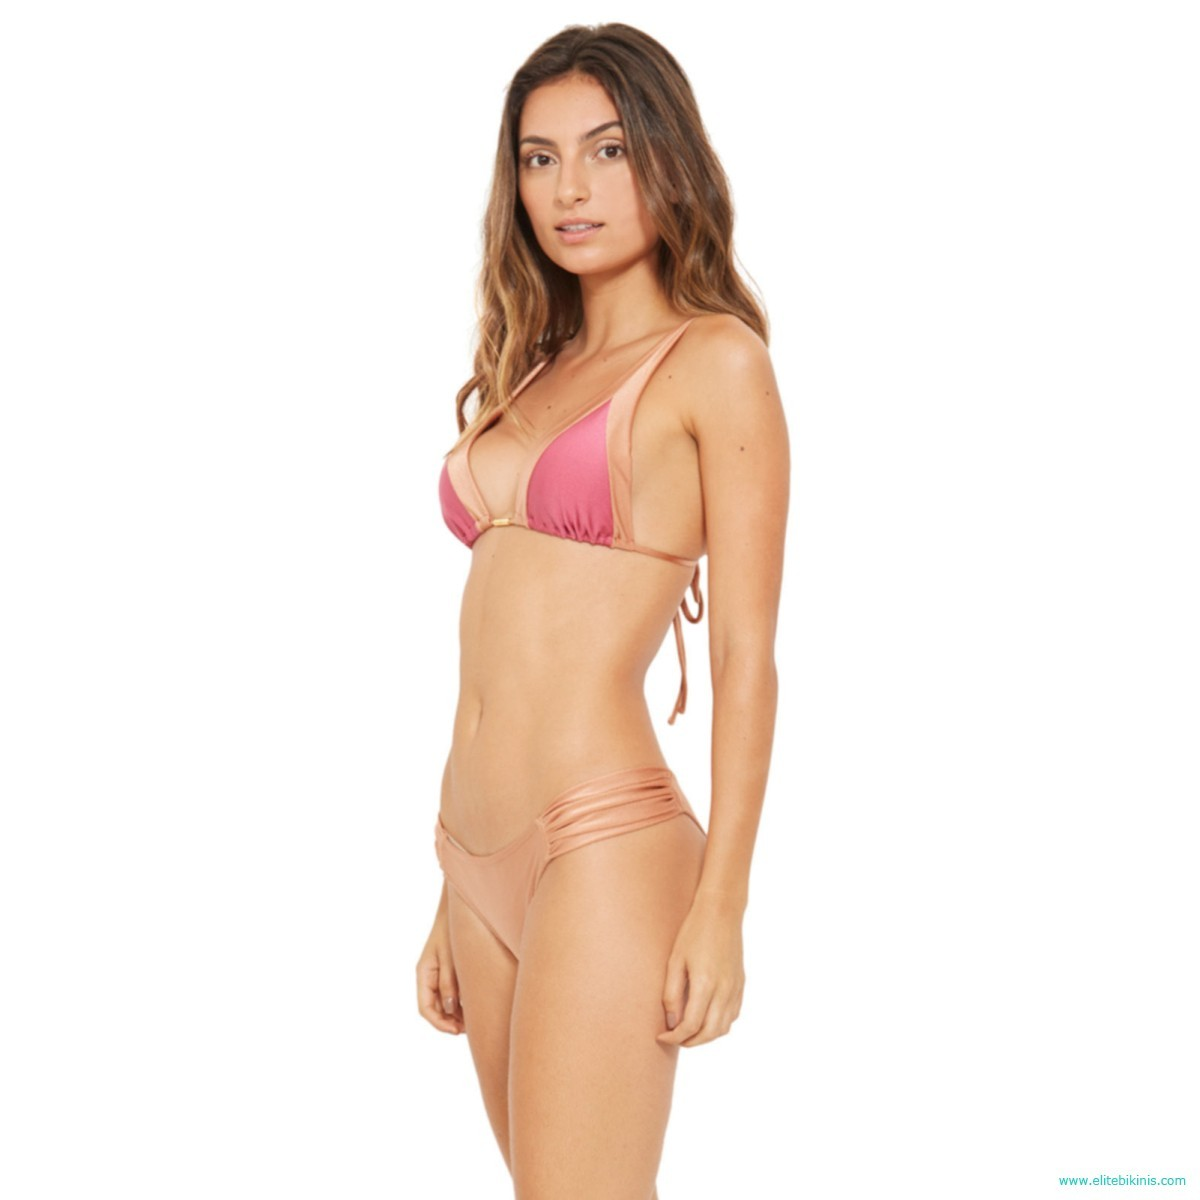 1a026f6ce07 Blue Man brings from Brazil this brand new multicolored brazilian bikini  model, the Acqua Marrom Eres. The top of Acqua Marrom Eres bikini has a  halter top ...